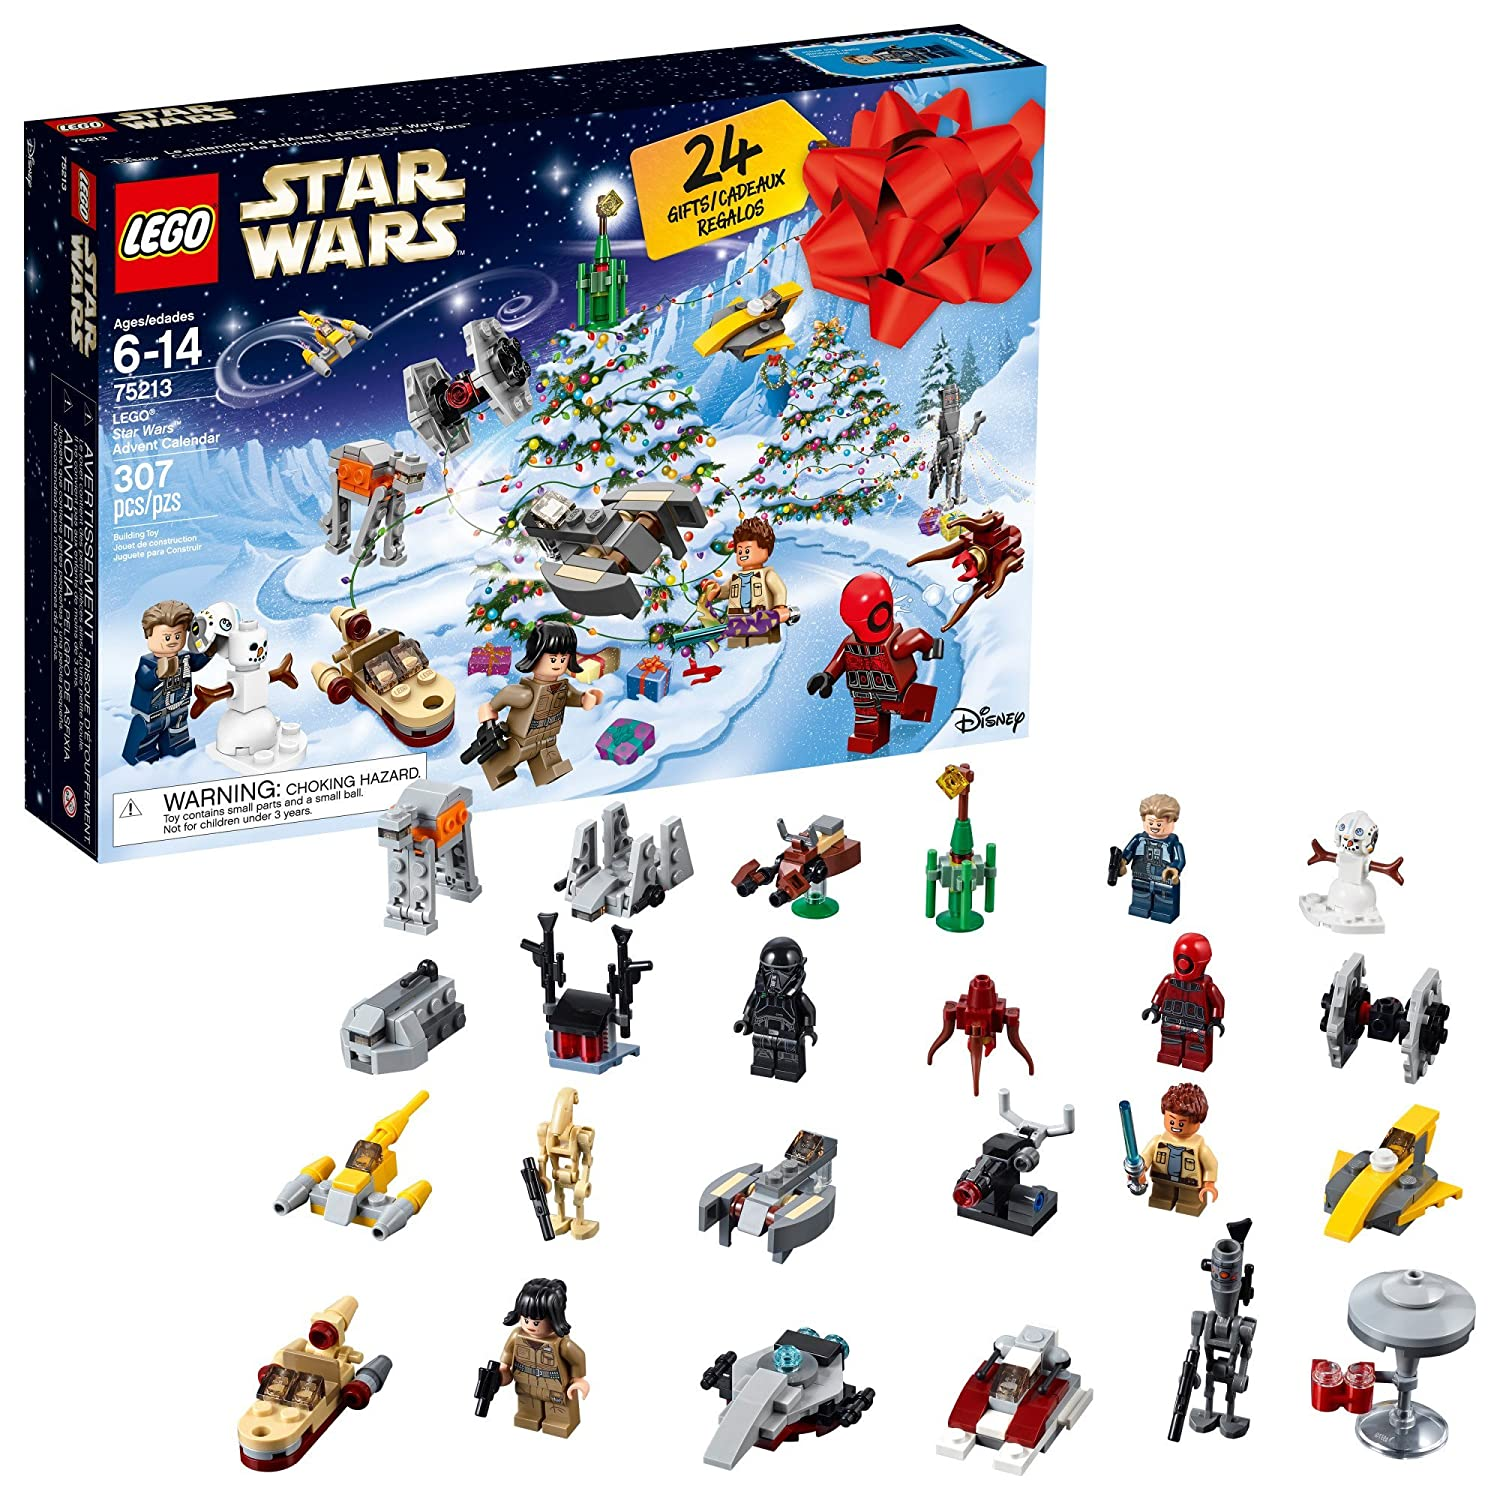 Lego Star Wars TM Advent Calendar 75213 Building Kit (307 Piece), Multi 6213564